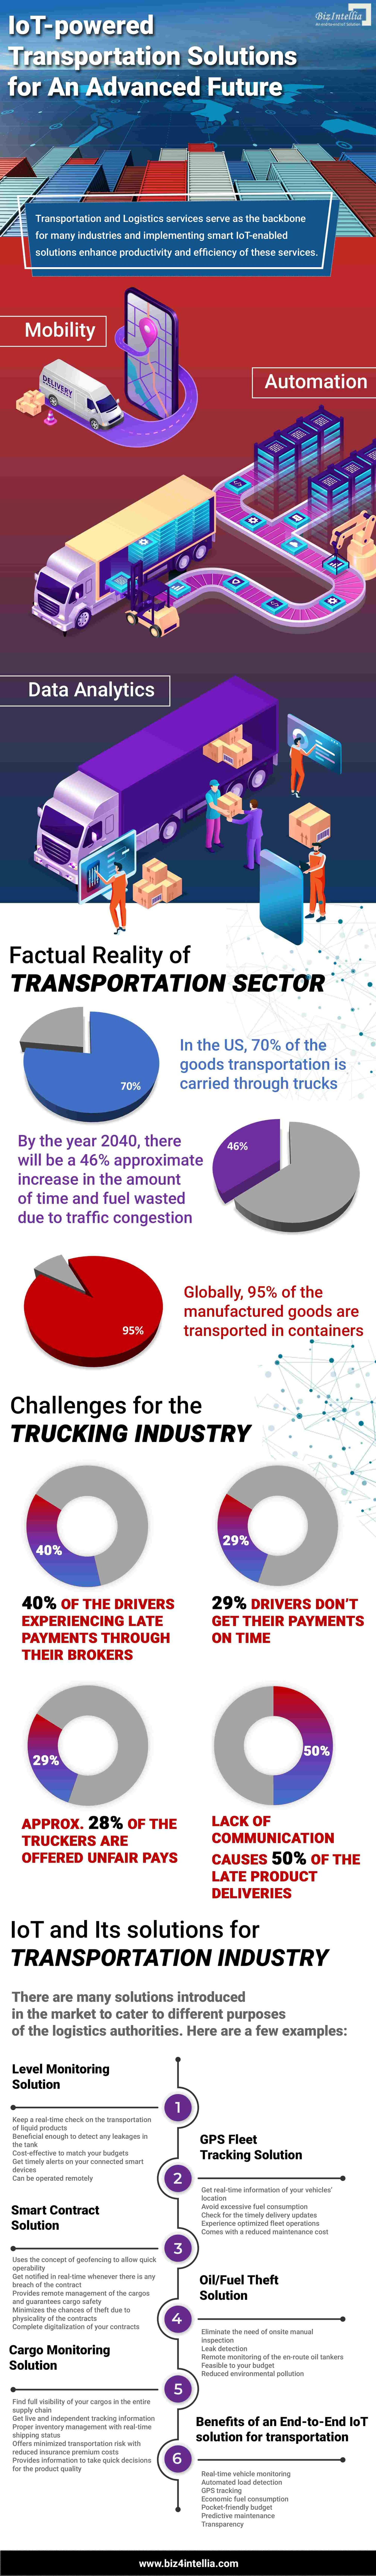 iot-powered-transportation-solutions-for-an-advanced-future